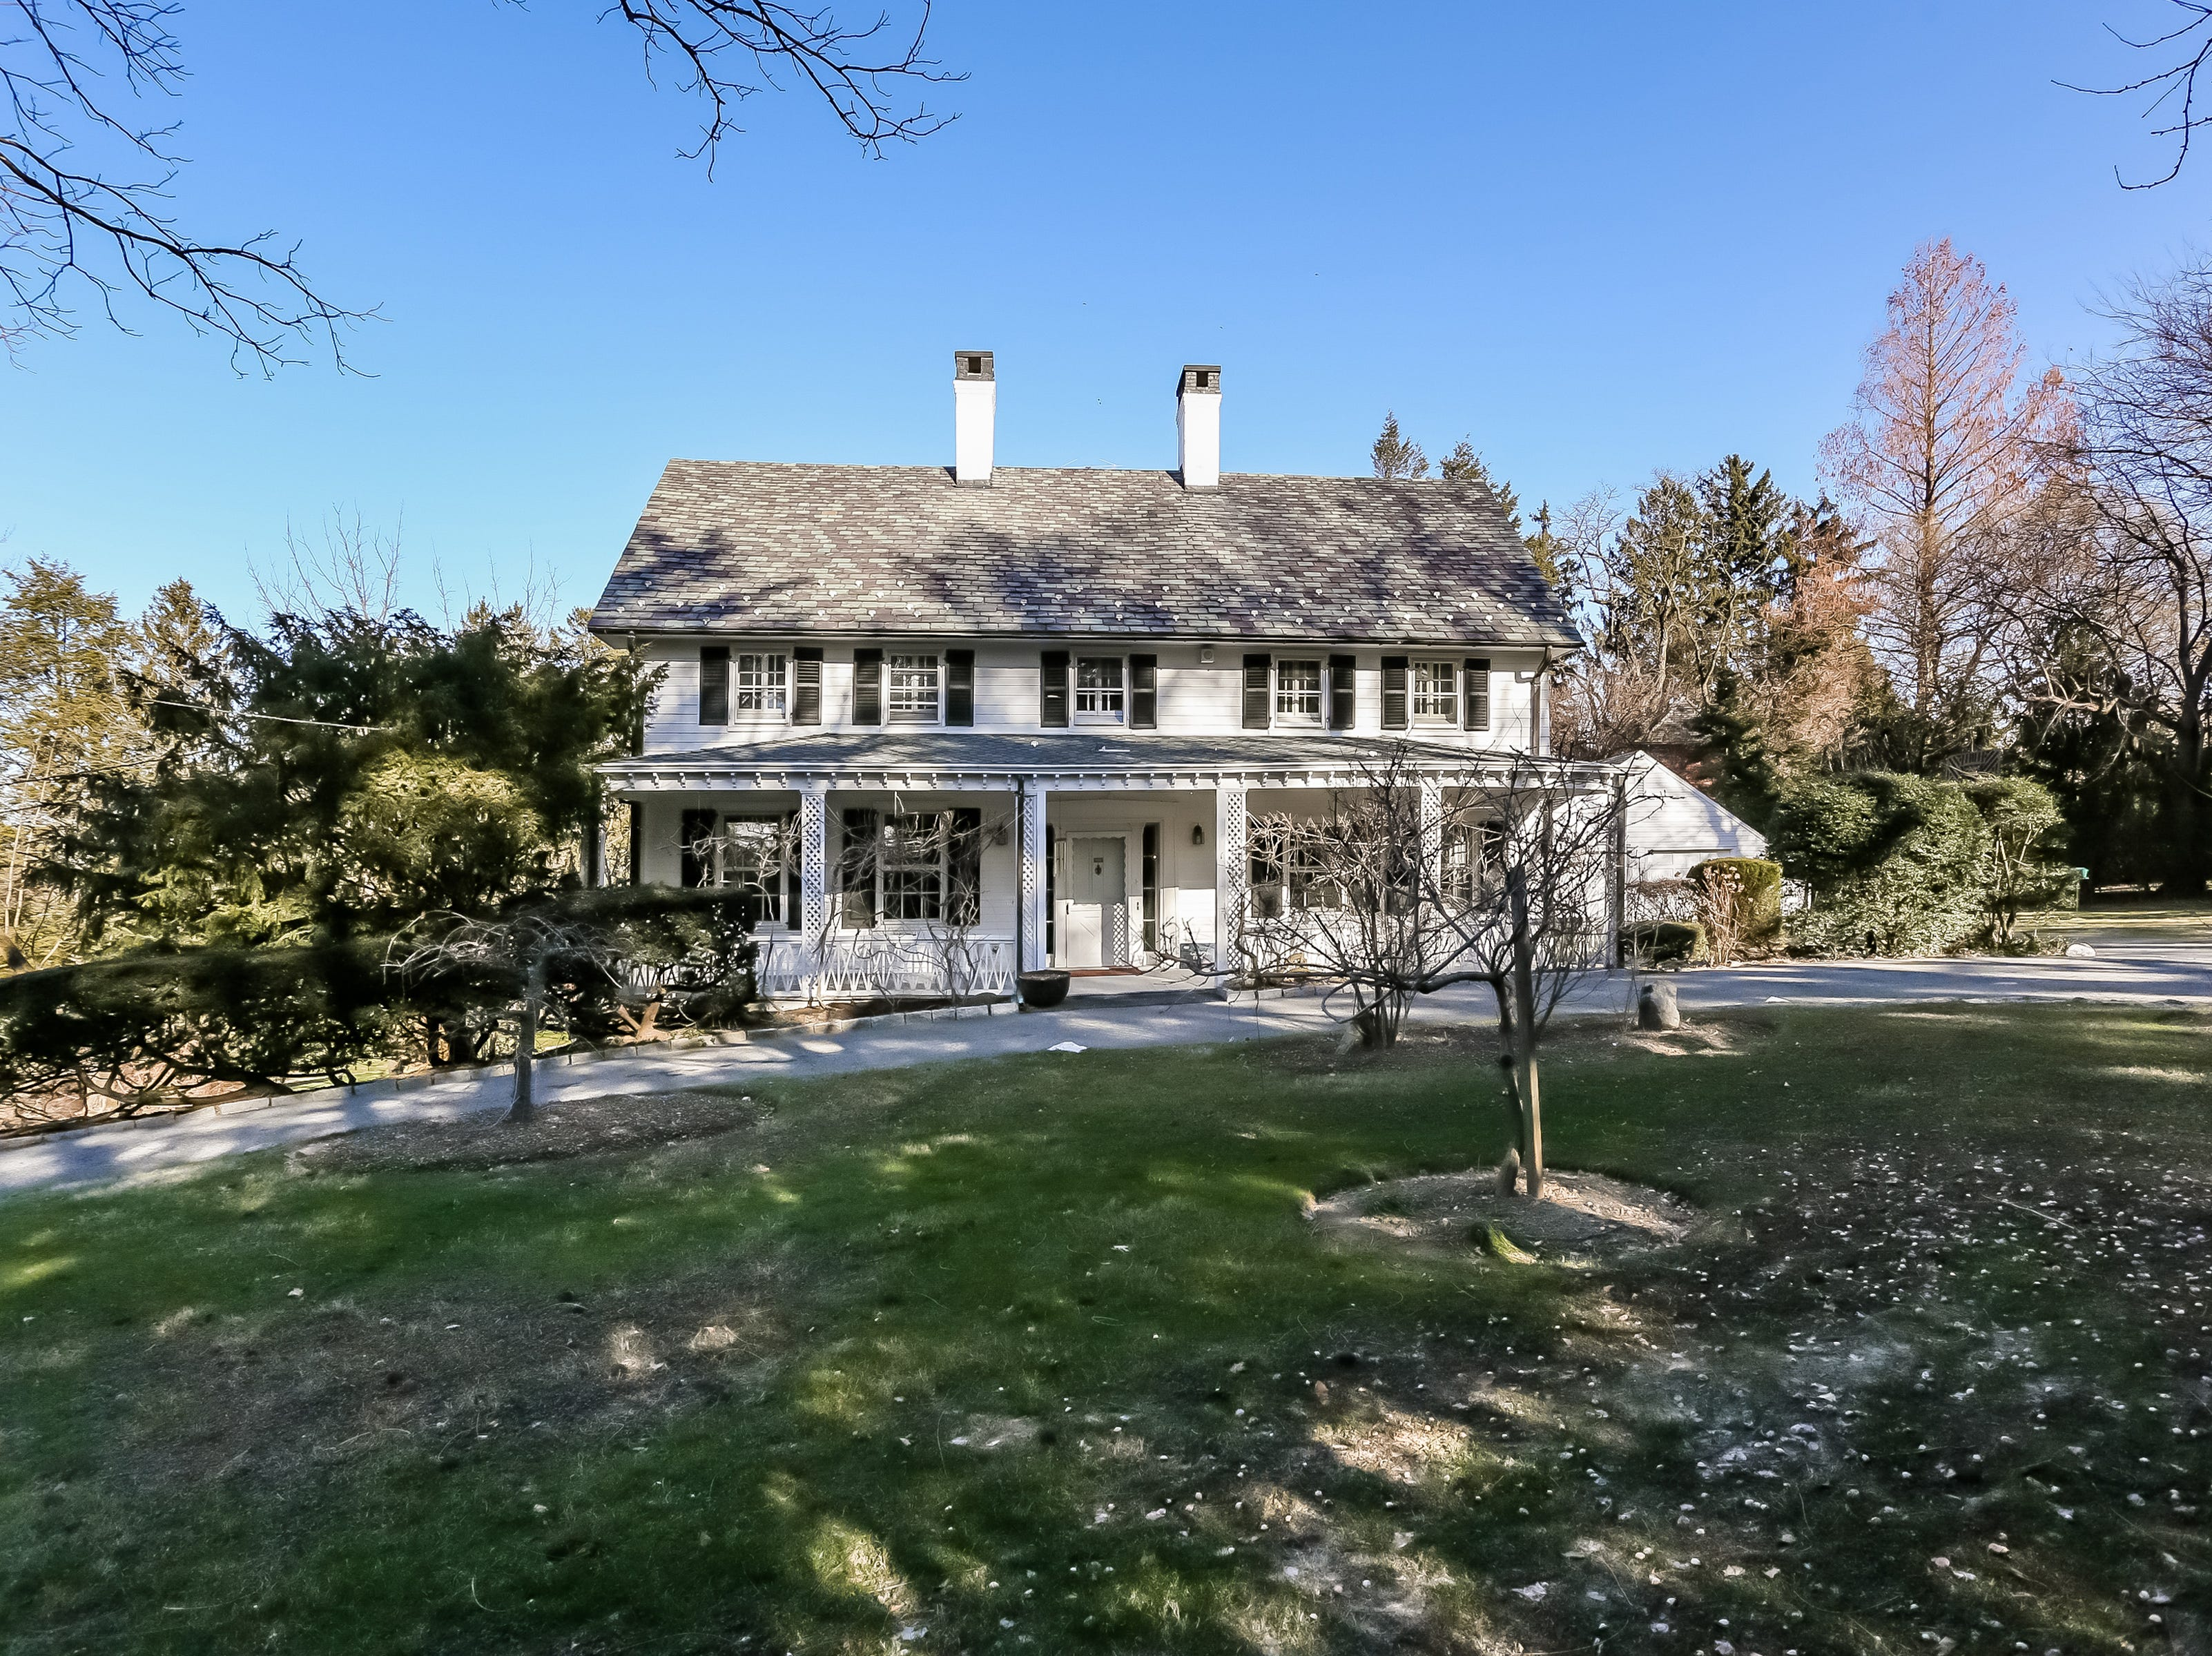 One of Scarsdale's oldest houses, on the market for $1.5M, has a colorful history